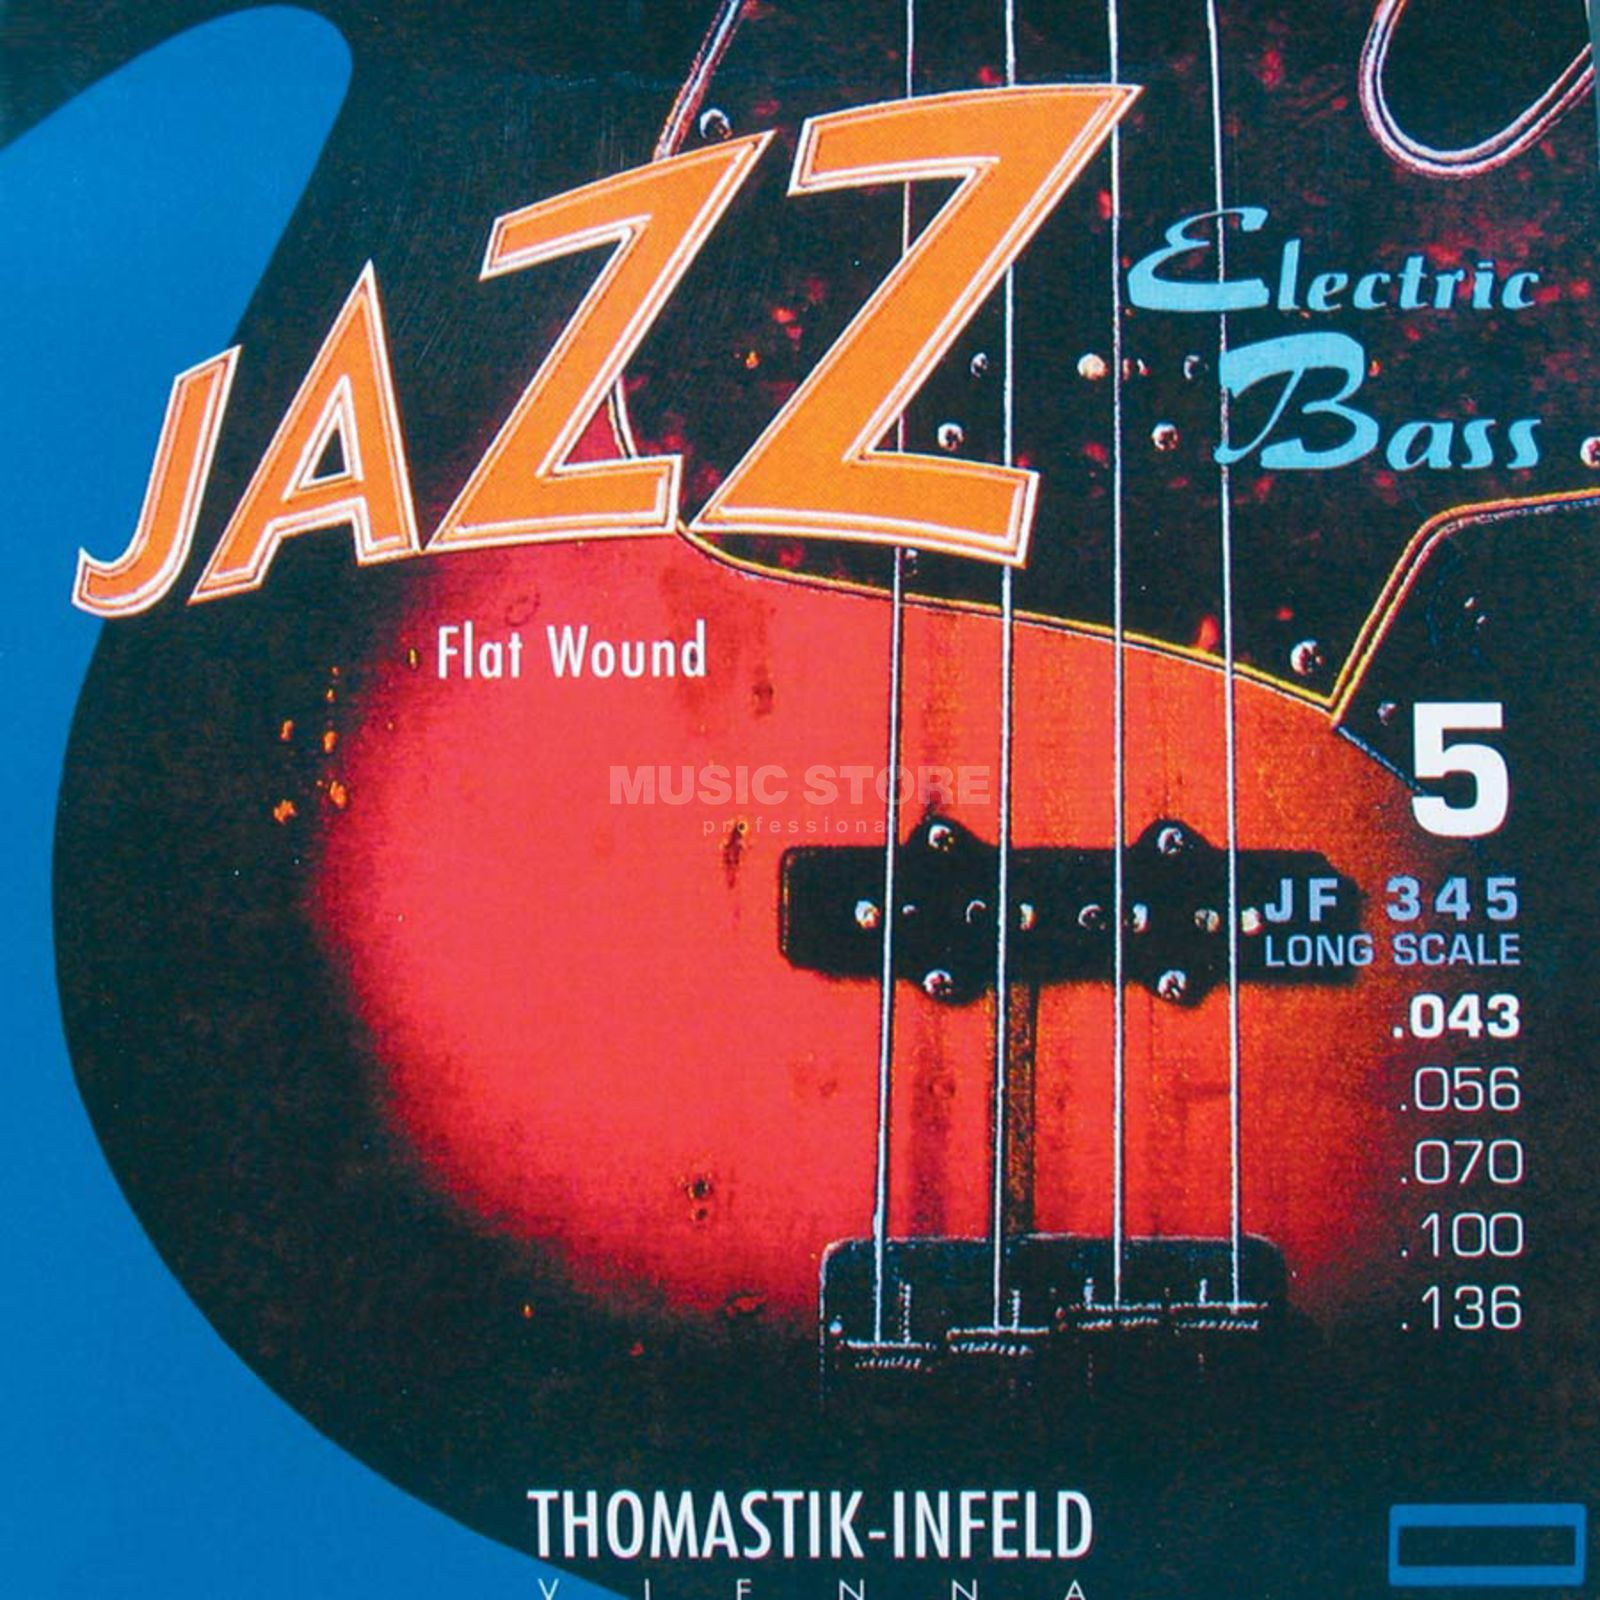 Thomastik 5 Bass Strings JF 345 43-136 Nickel Flat Wound Imagem do produto